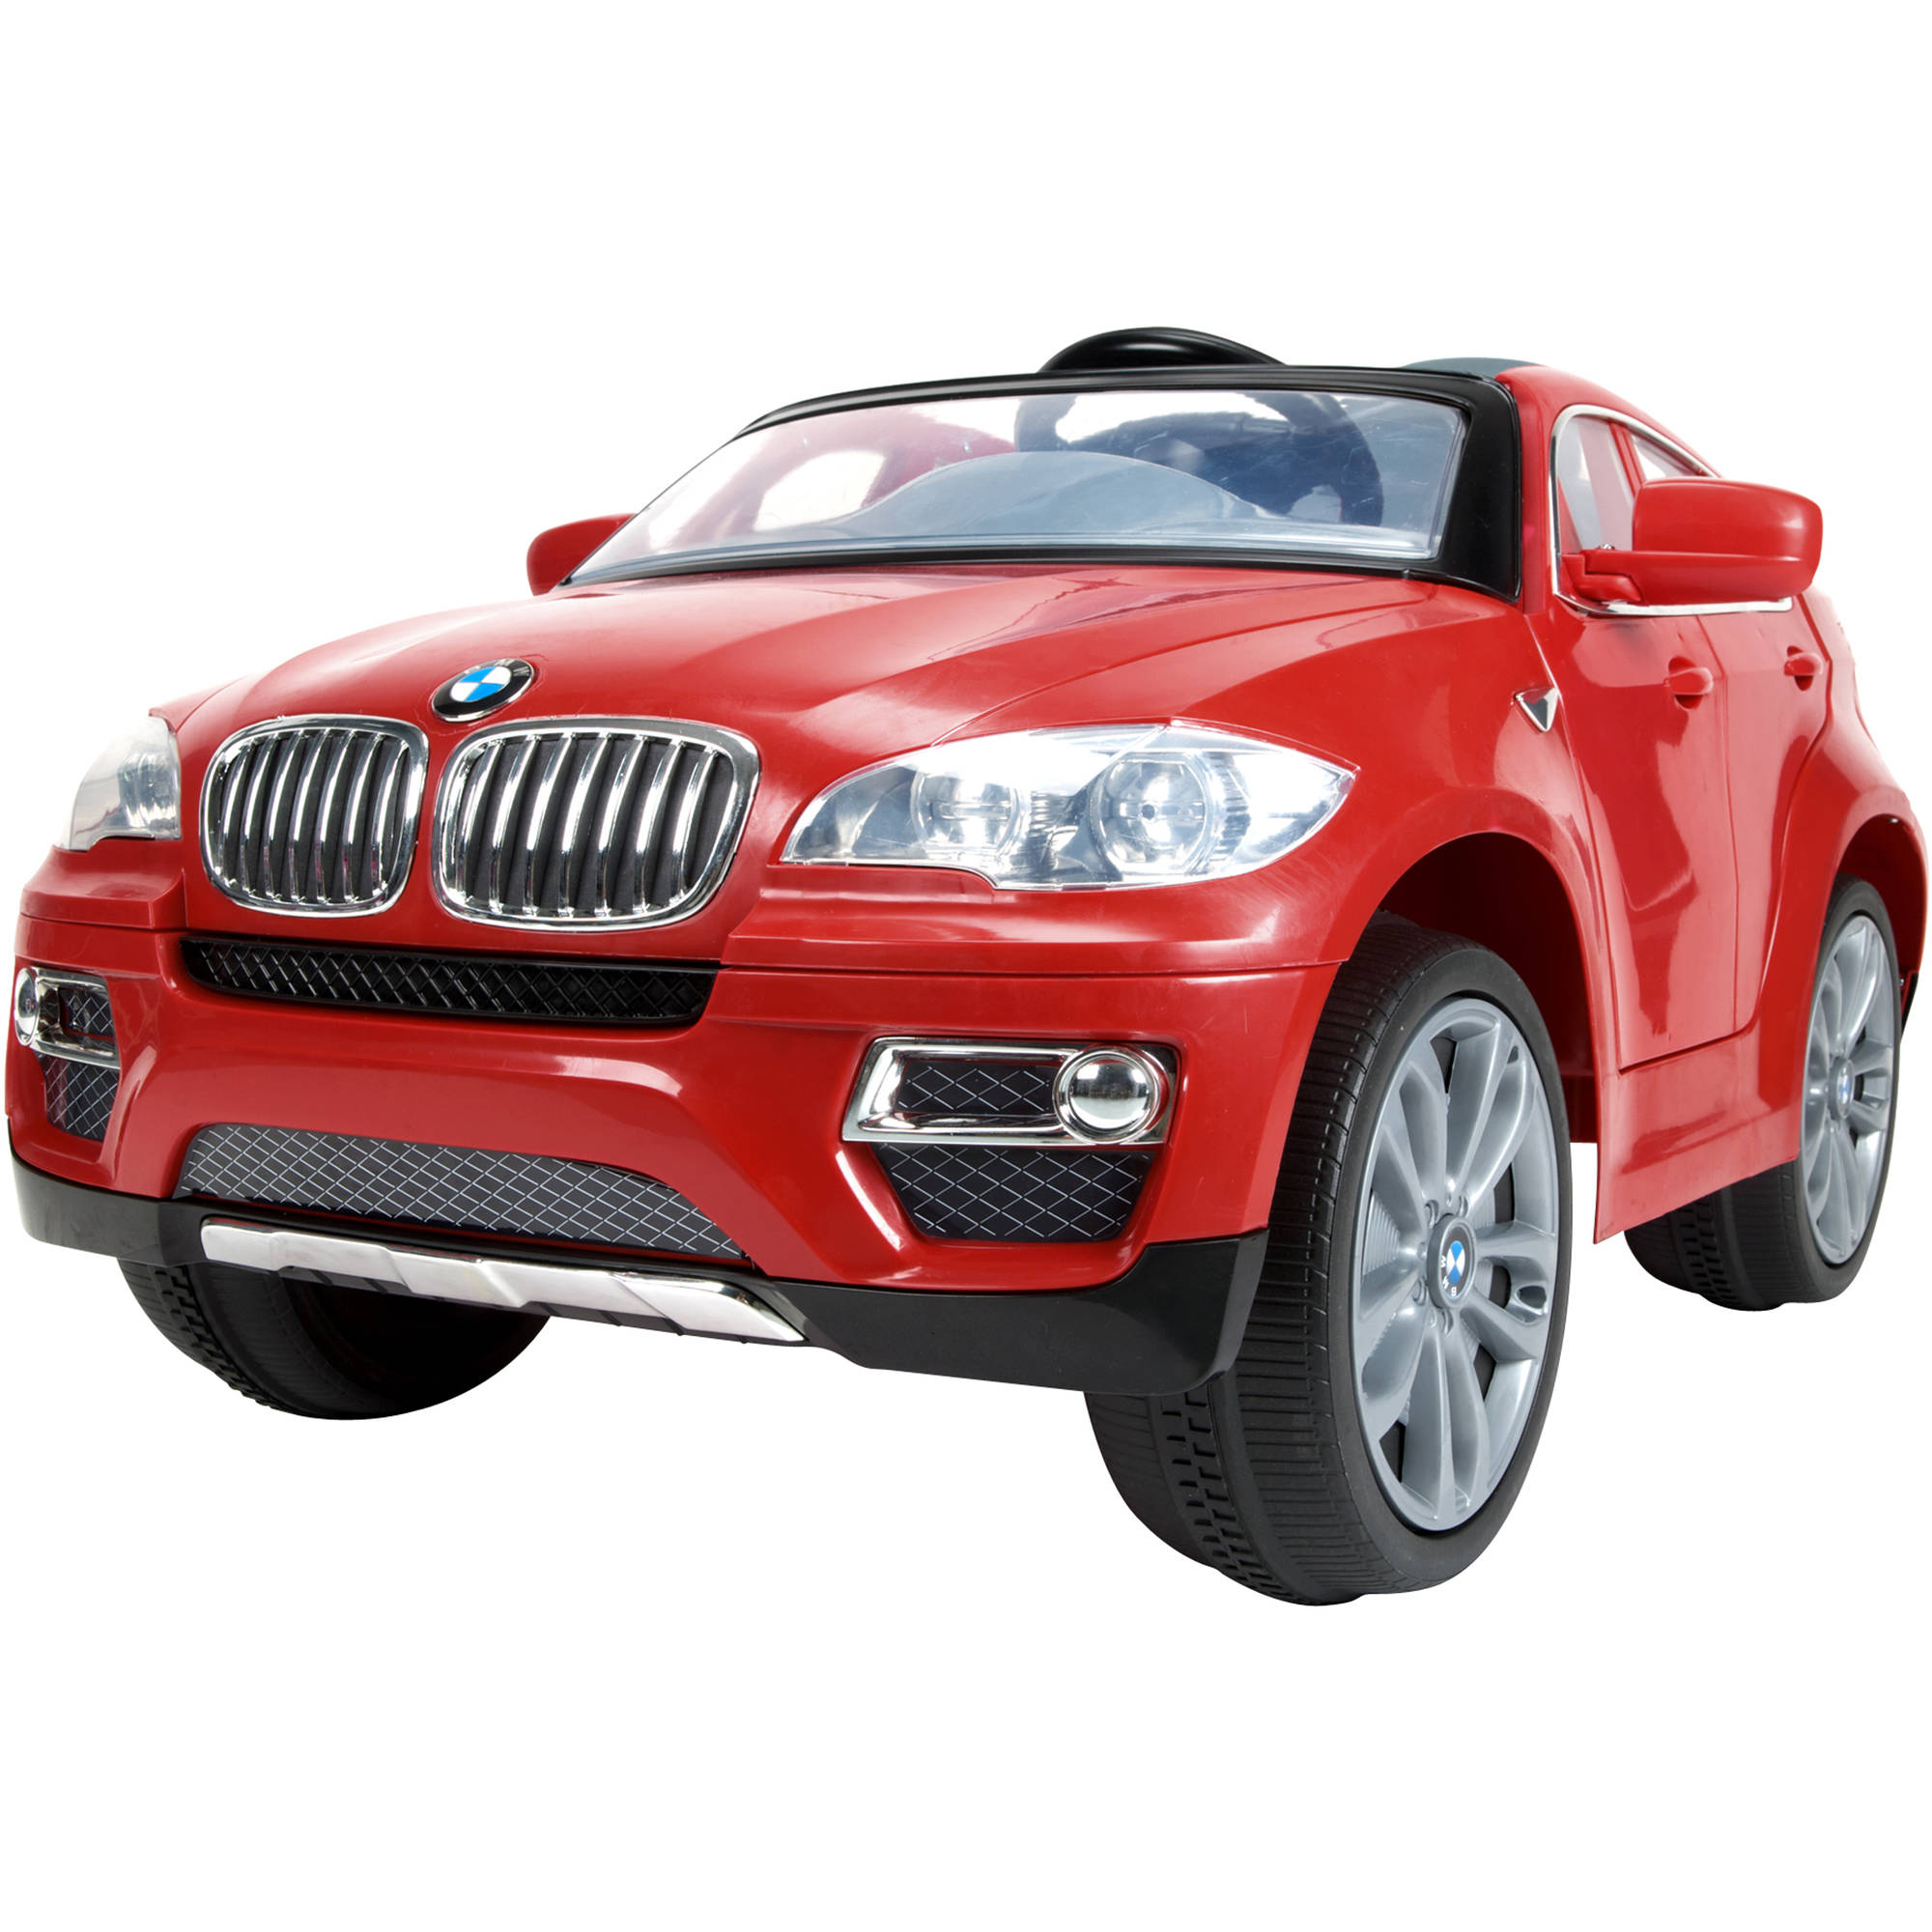 Masinuta electrica copii BMW X6 BORDO